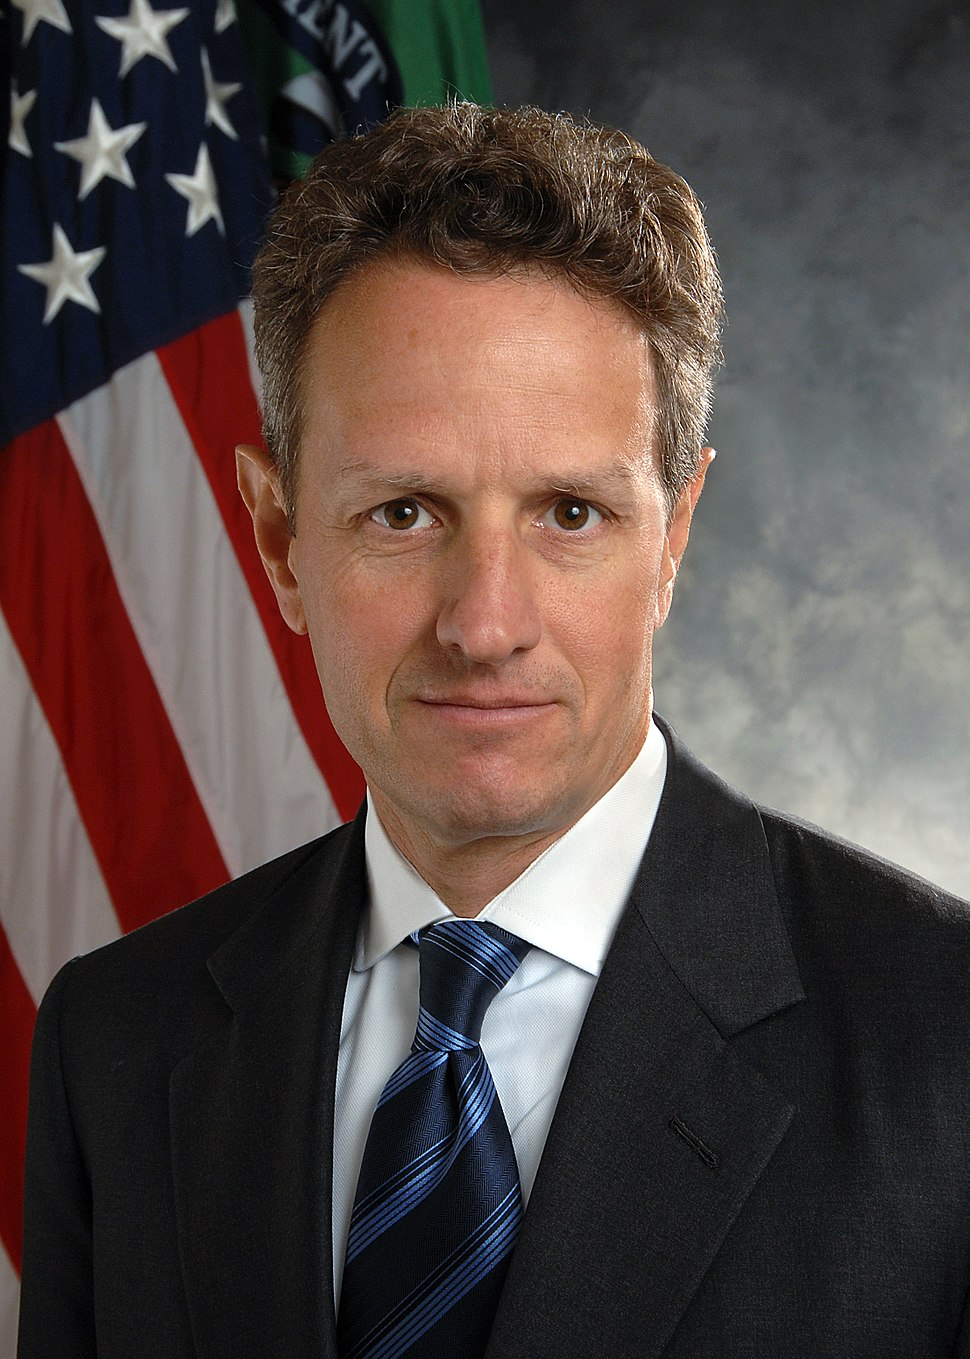 Timothy Geithner official portrait